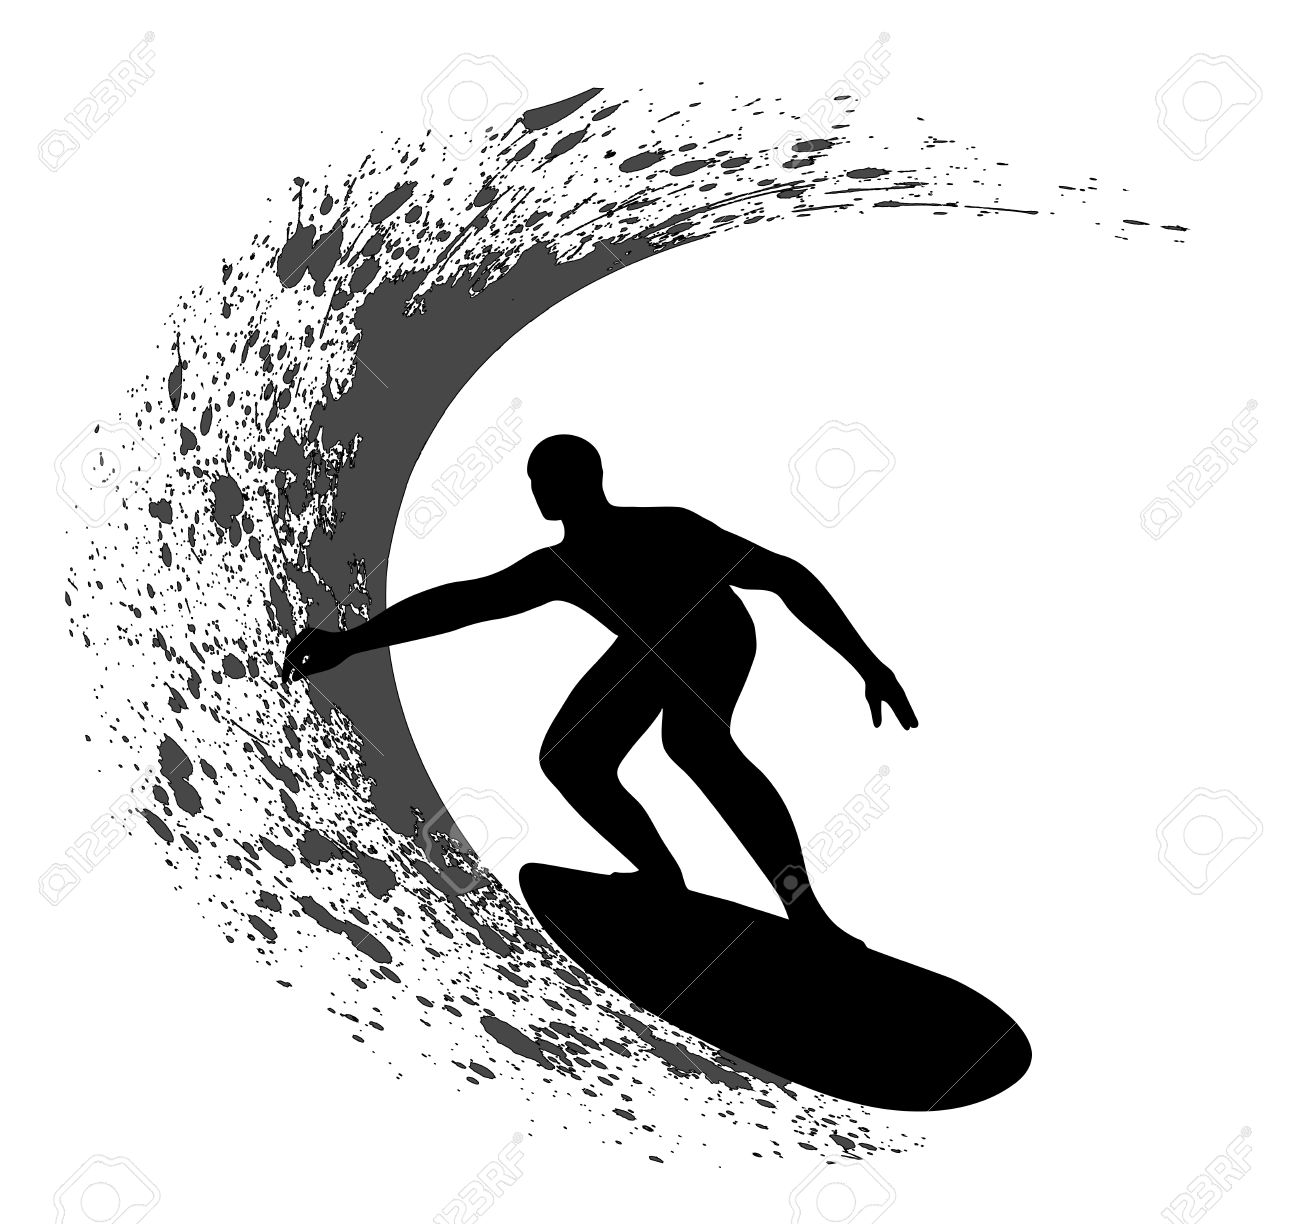 Surfer silhouette on grunge background Stock Vector - 17014069